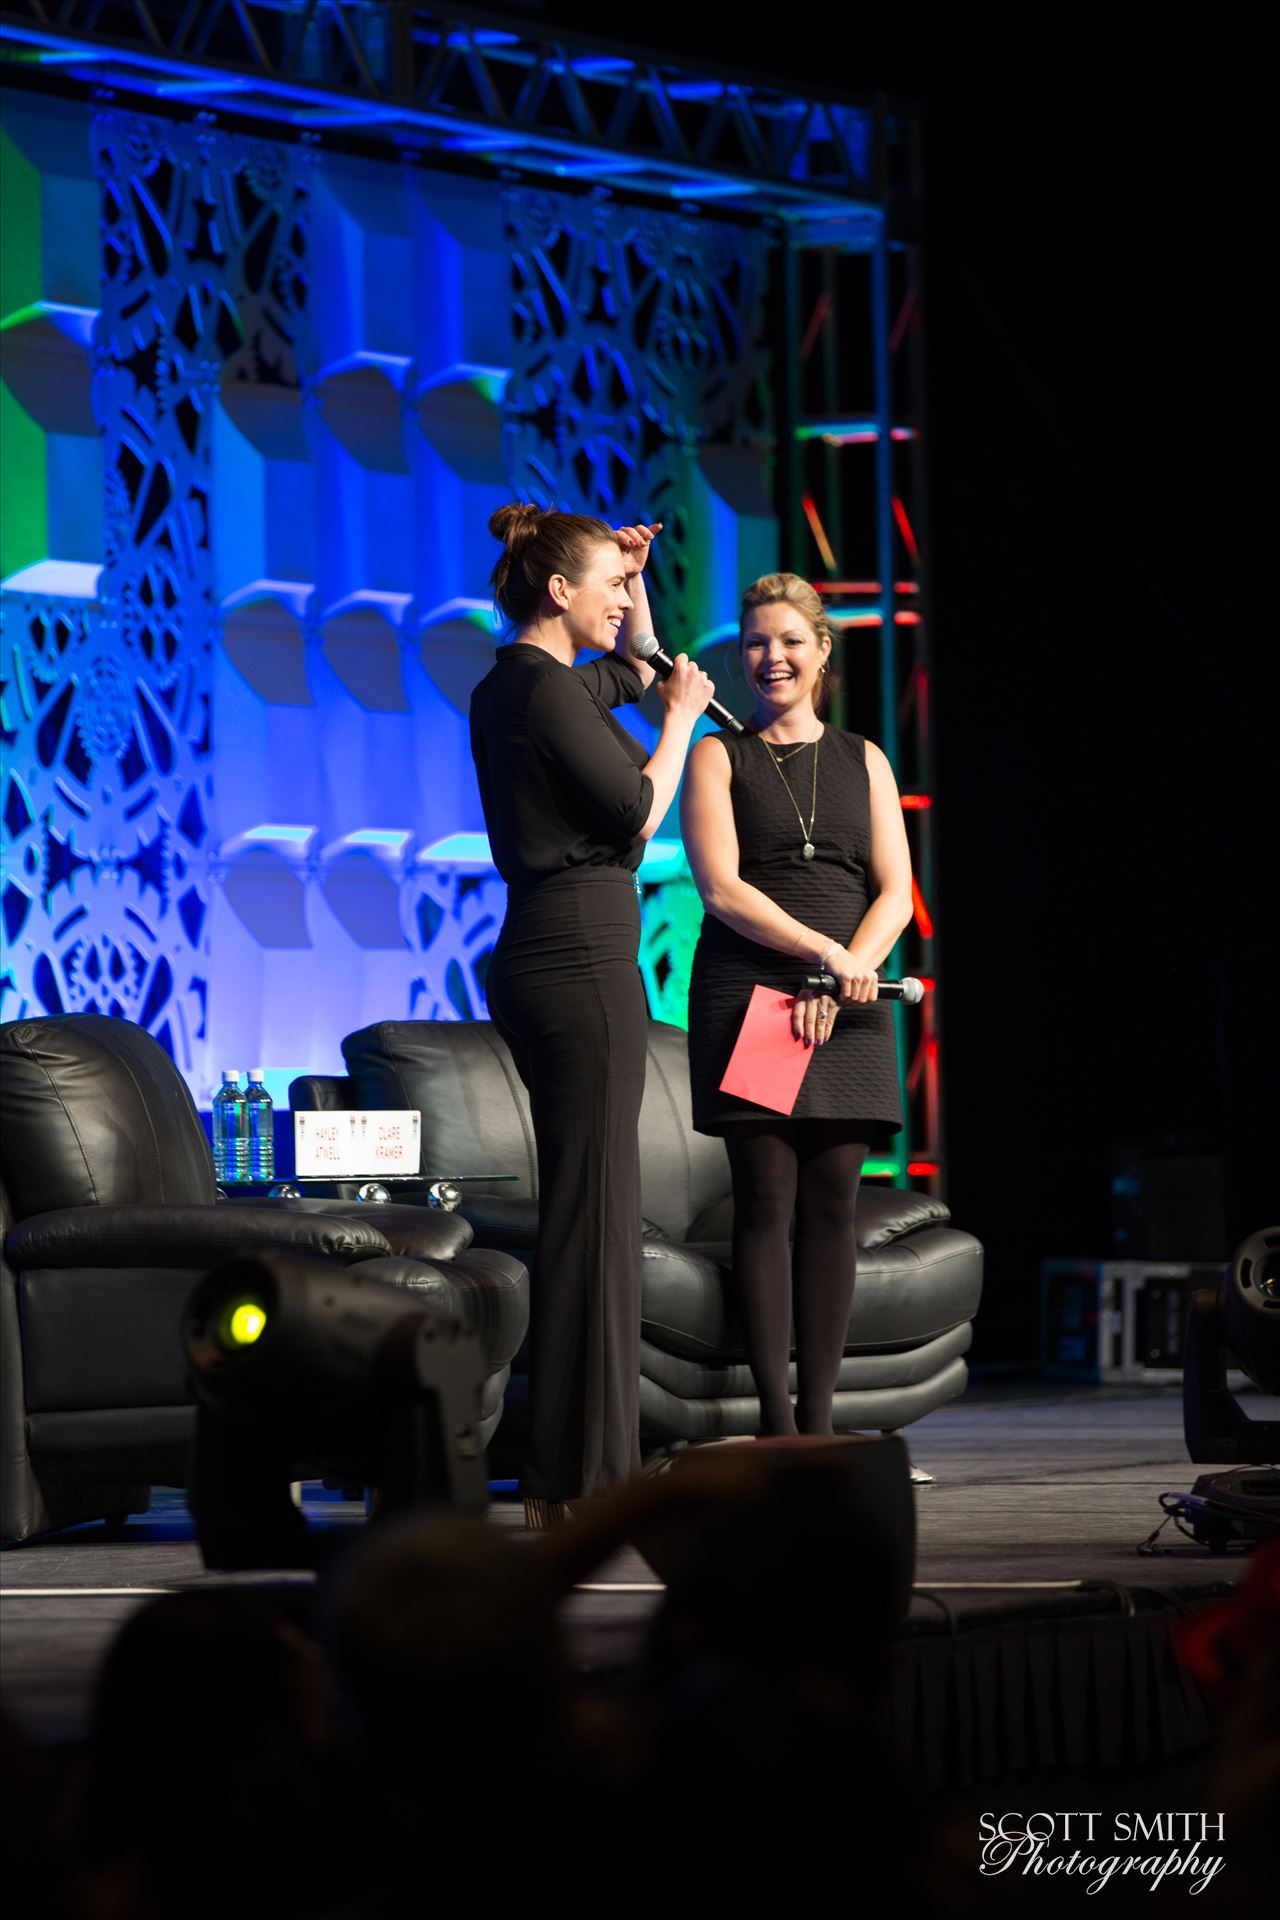 Denver Comic Con 2016 17 - Denver Comic Con 2016 at the Colorado Convention Center.  Clare Kramer and Haley Atwell. by D Scott Smith